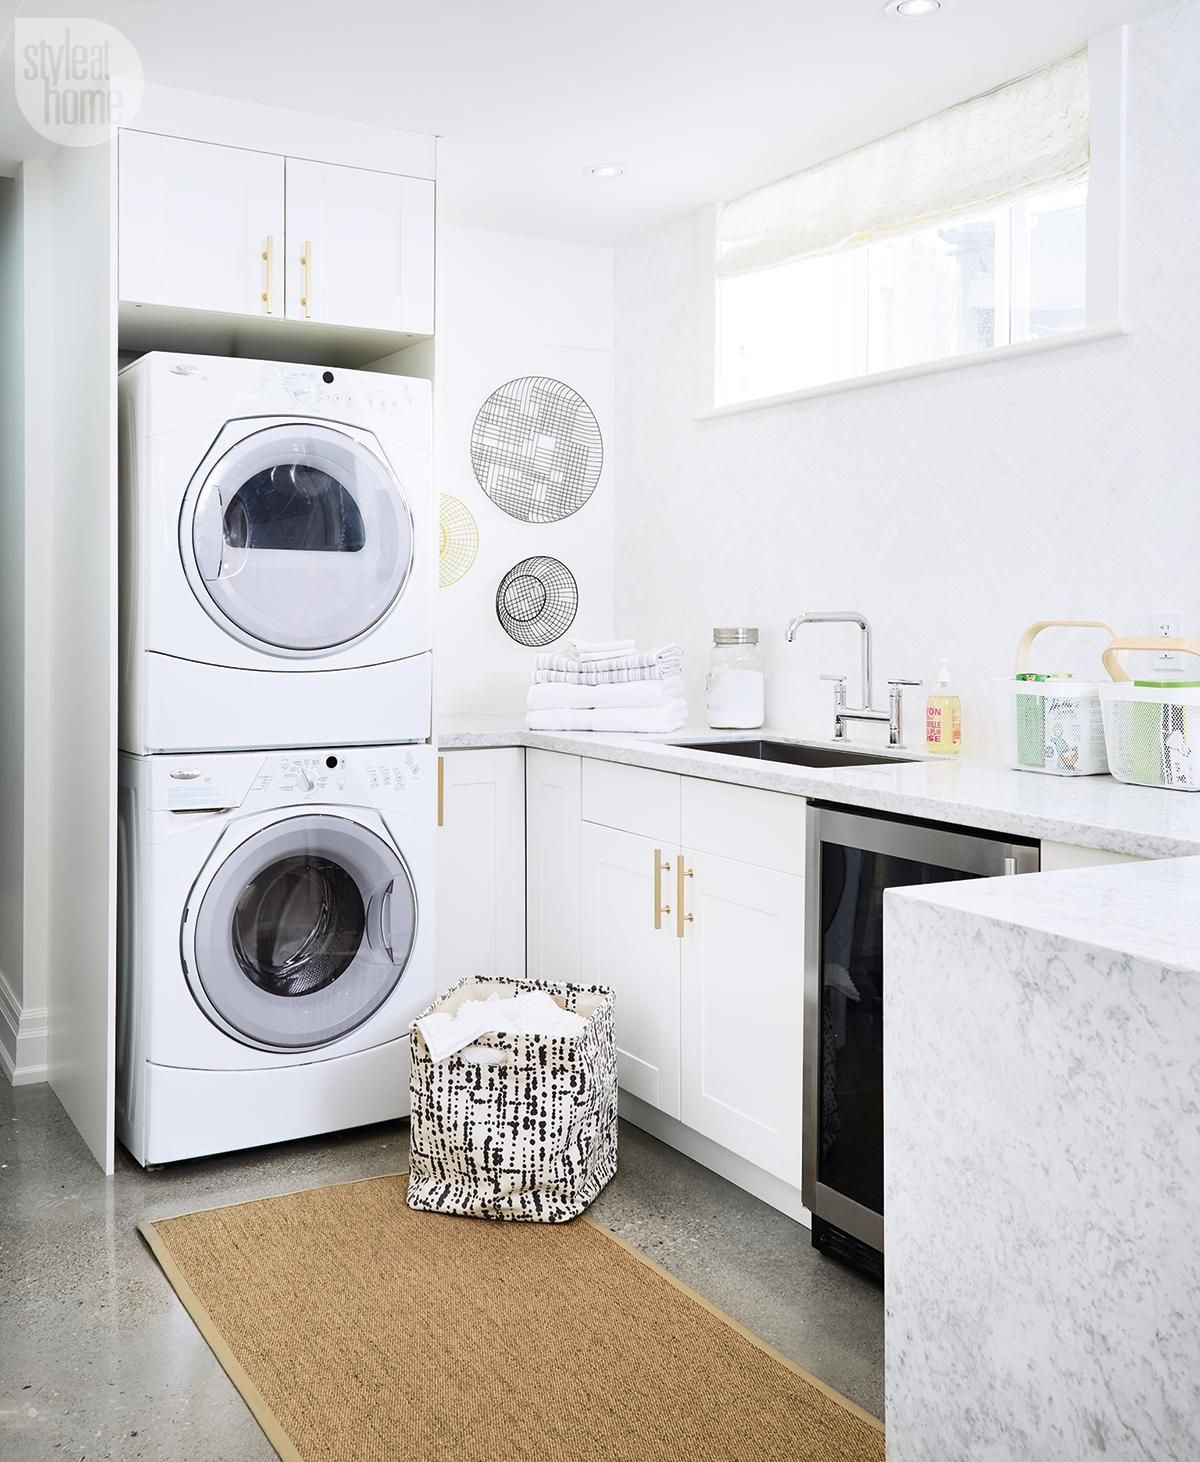 Laundry Room Ideas Ikea Basement Renovation Vibrant Multi Purpose Space